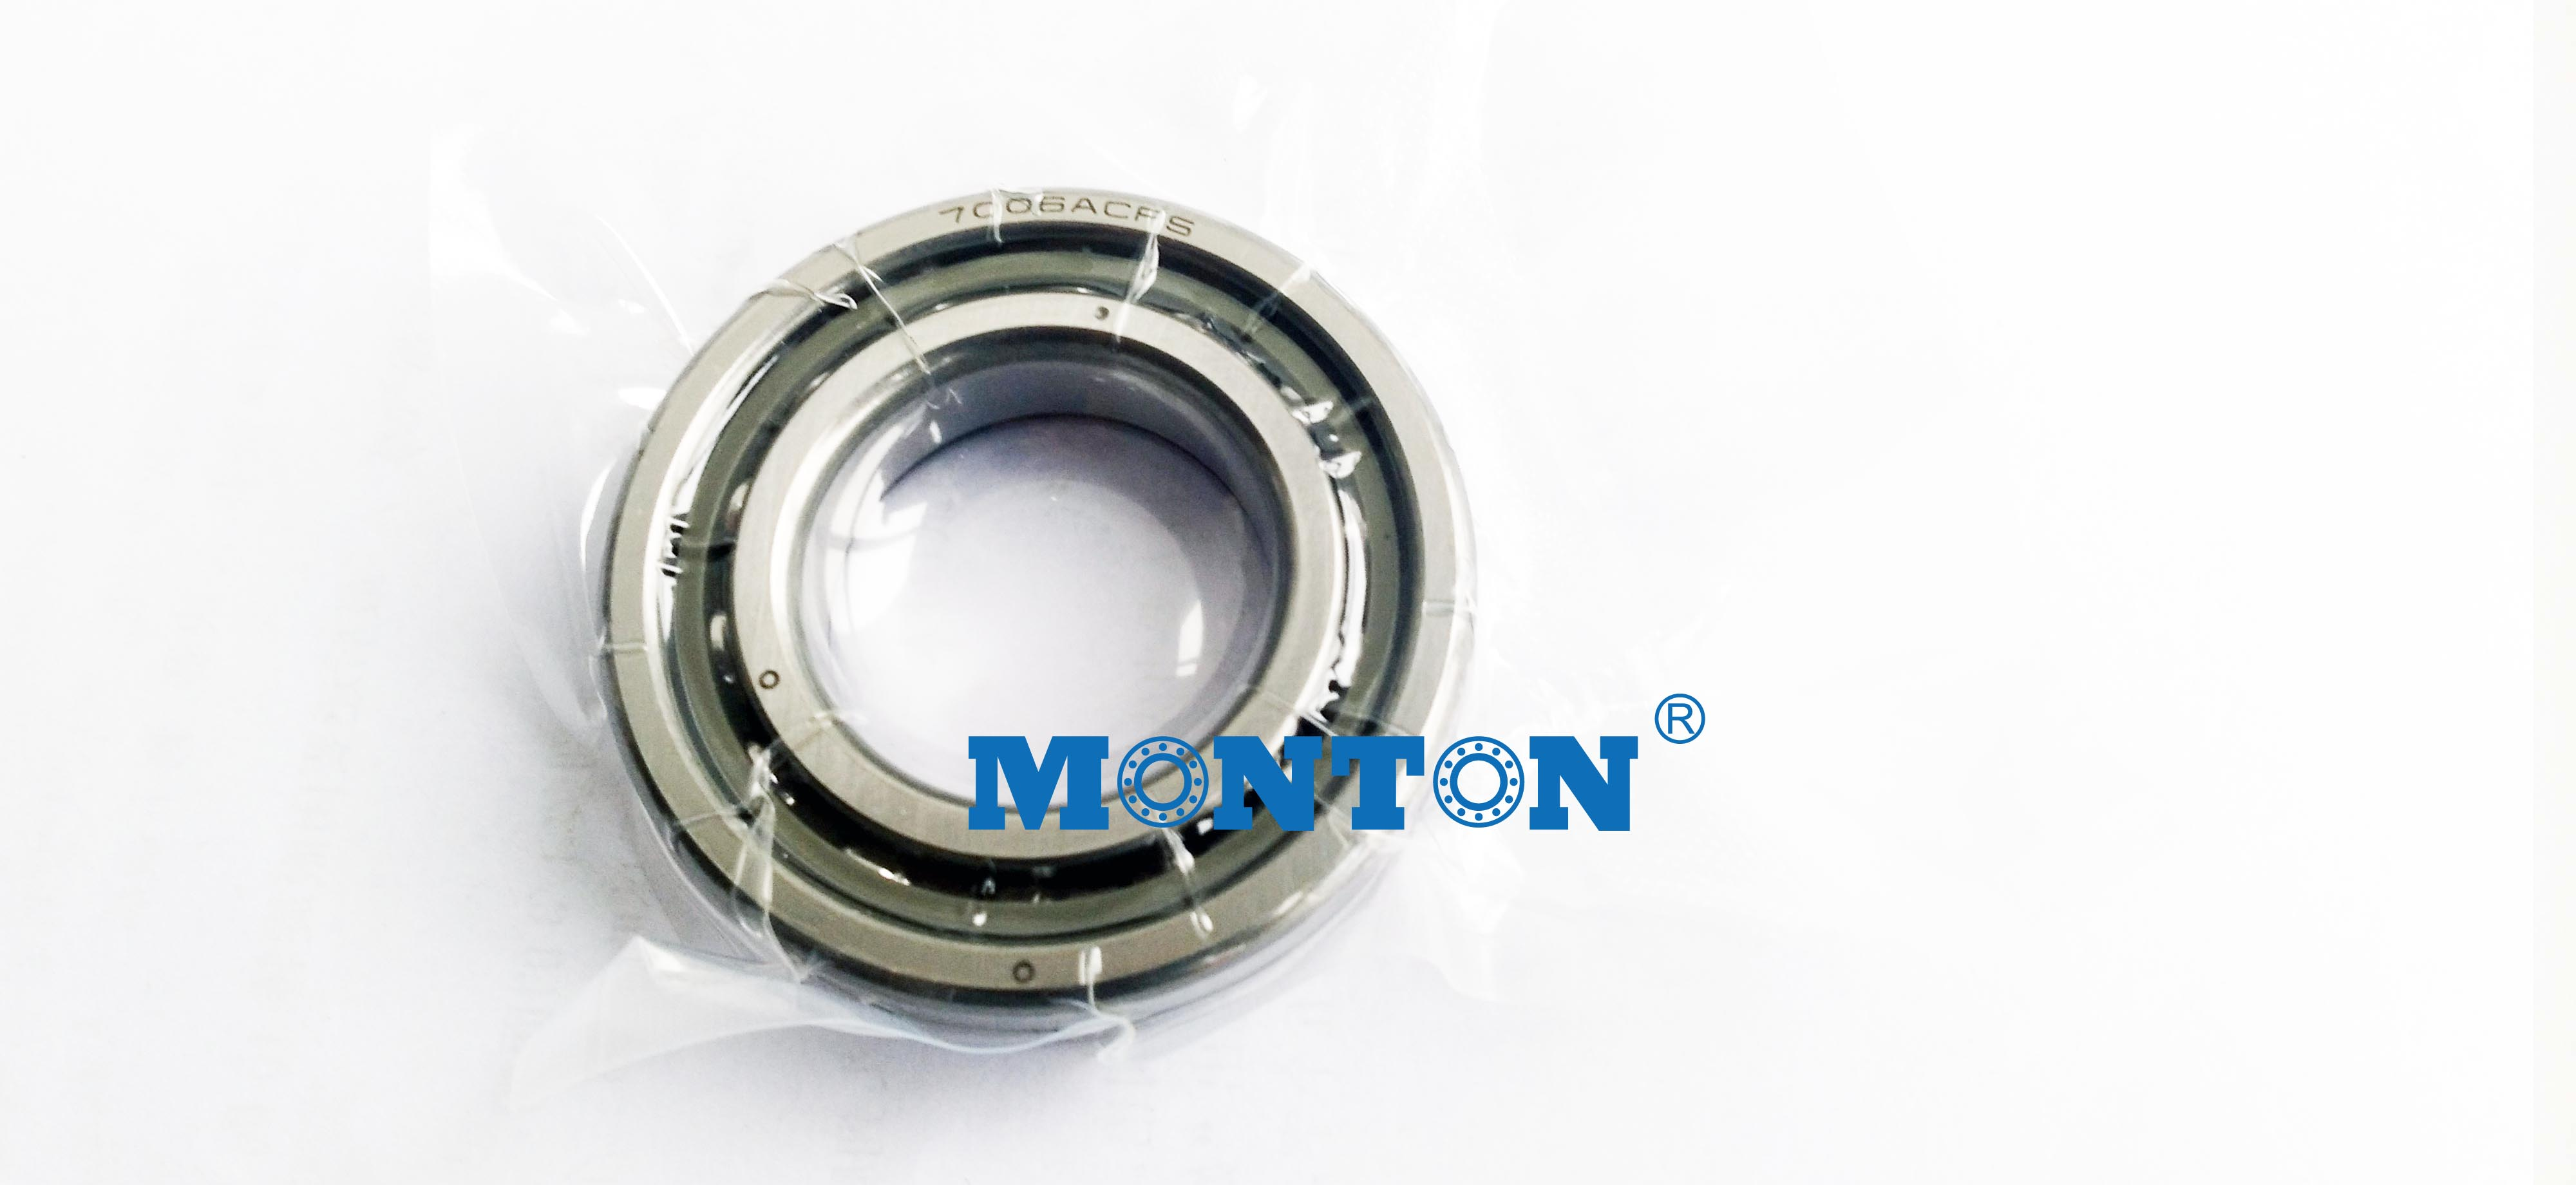 7205 ACDP4ADGA Super Precision Angular Contact Bearing - 25 mm ID, 52 mm OD, 15 mm Width, 25 ° Contact, ABEC 7